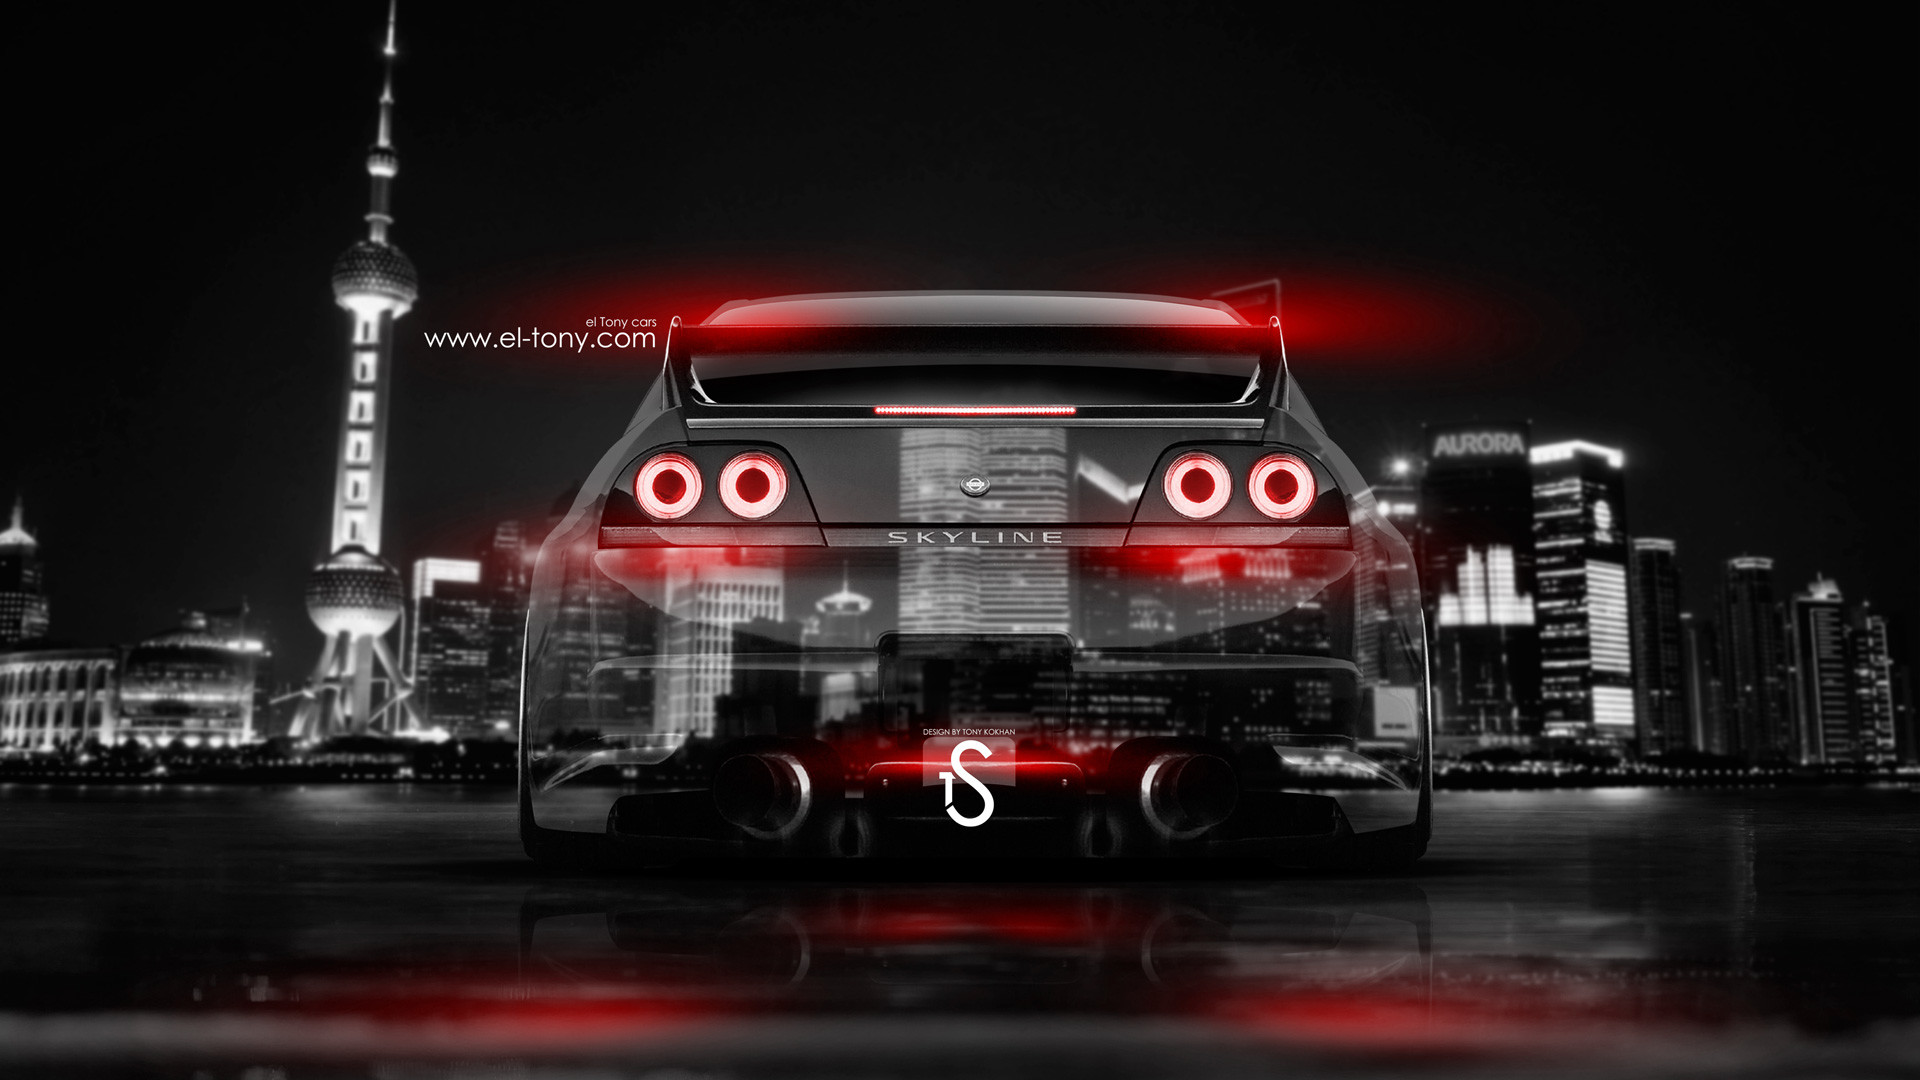 1920x1080 Cars Backview Vehicles Nissan Skyline R32 Gtr Jdm Nissan Skyline  R33 Gtr 1920x1080 Tuning Wallpaper